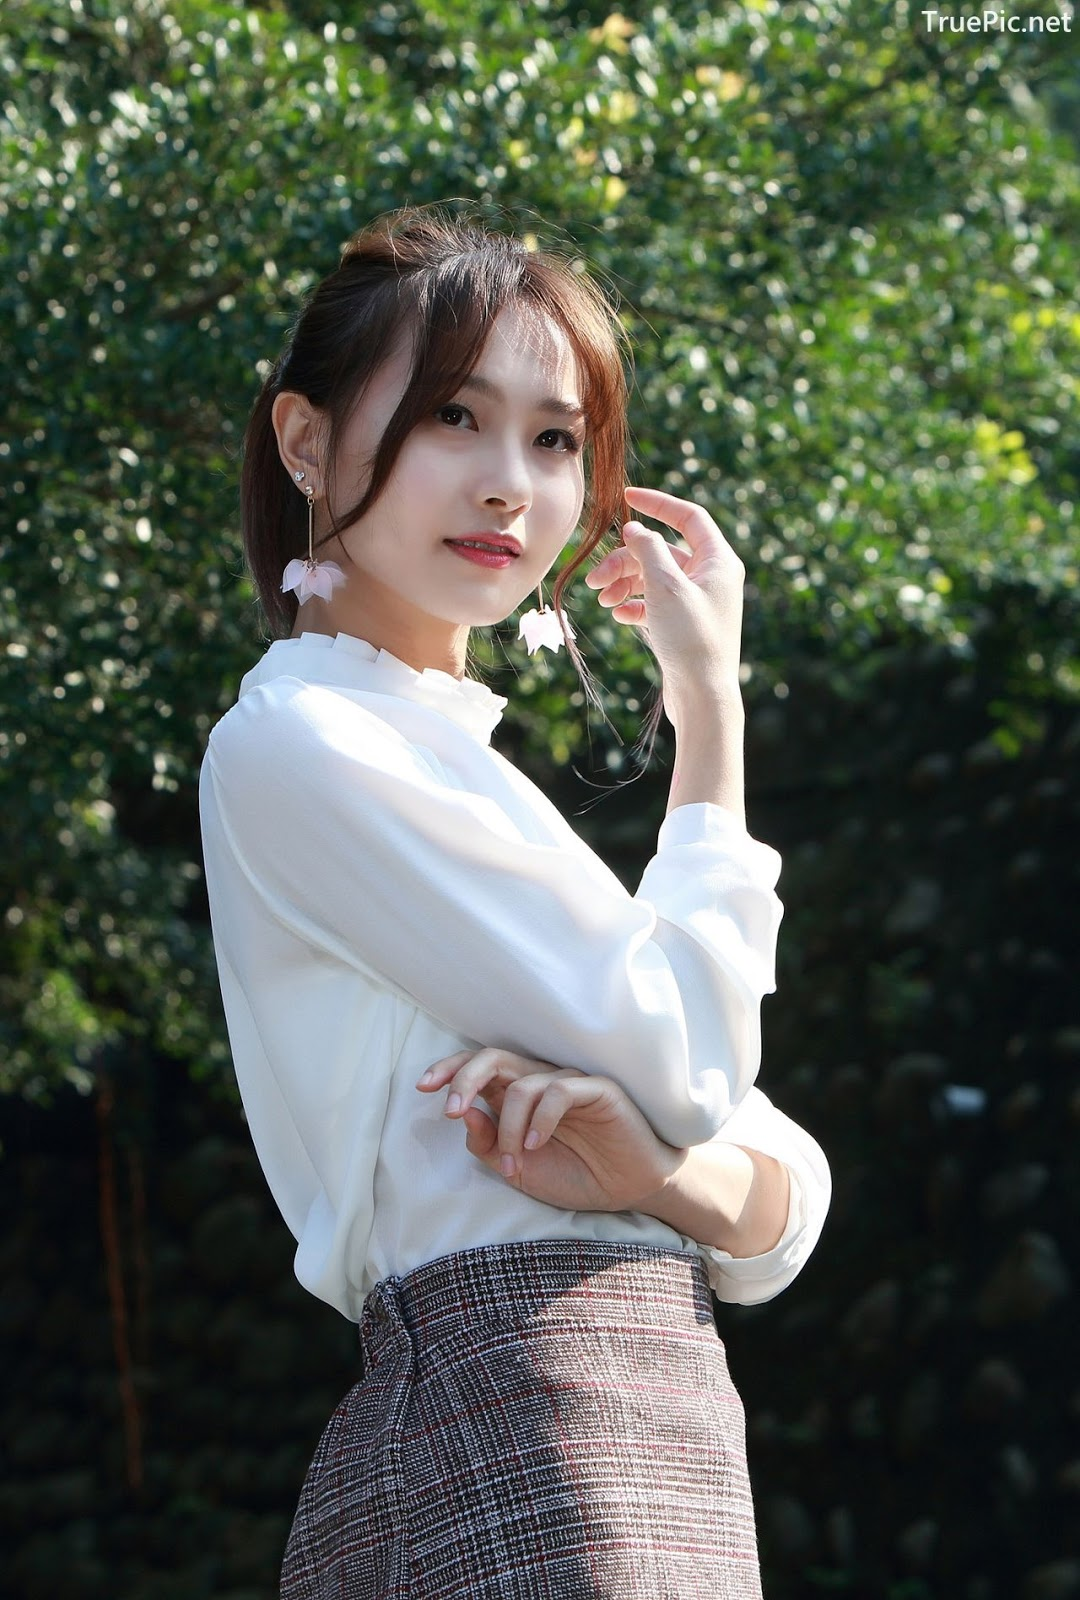 Image-Taiwanese-Model-郭思敏-Pure-And-Gorgeous-Girl-In-Office-Uniform-TruePic.net- Picture-9